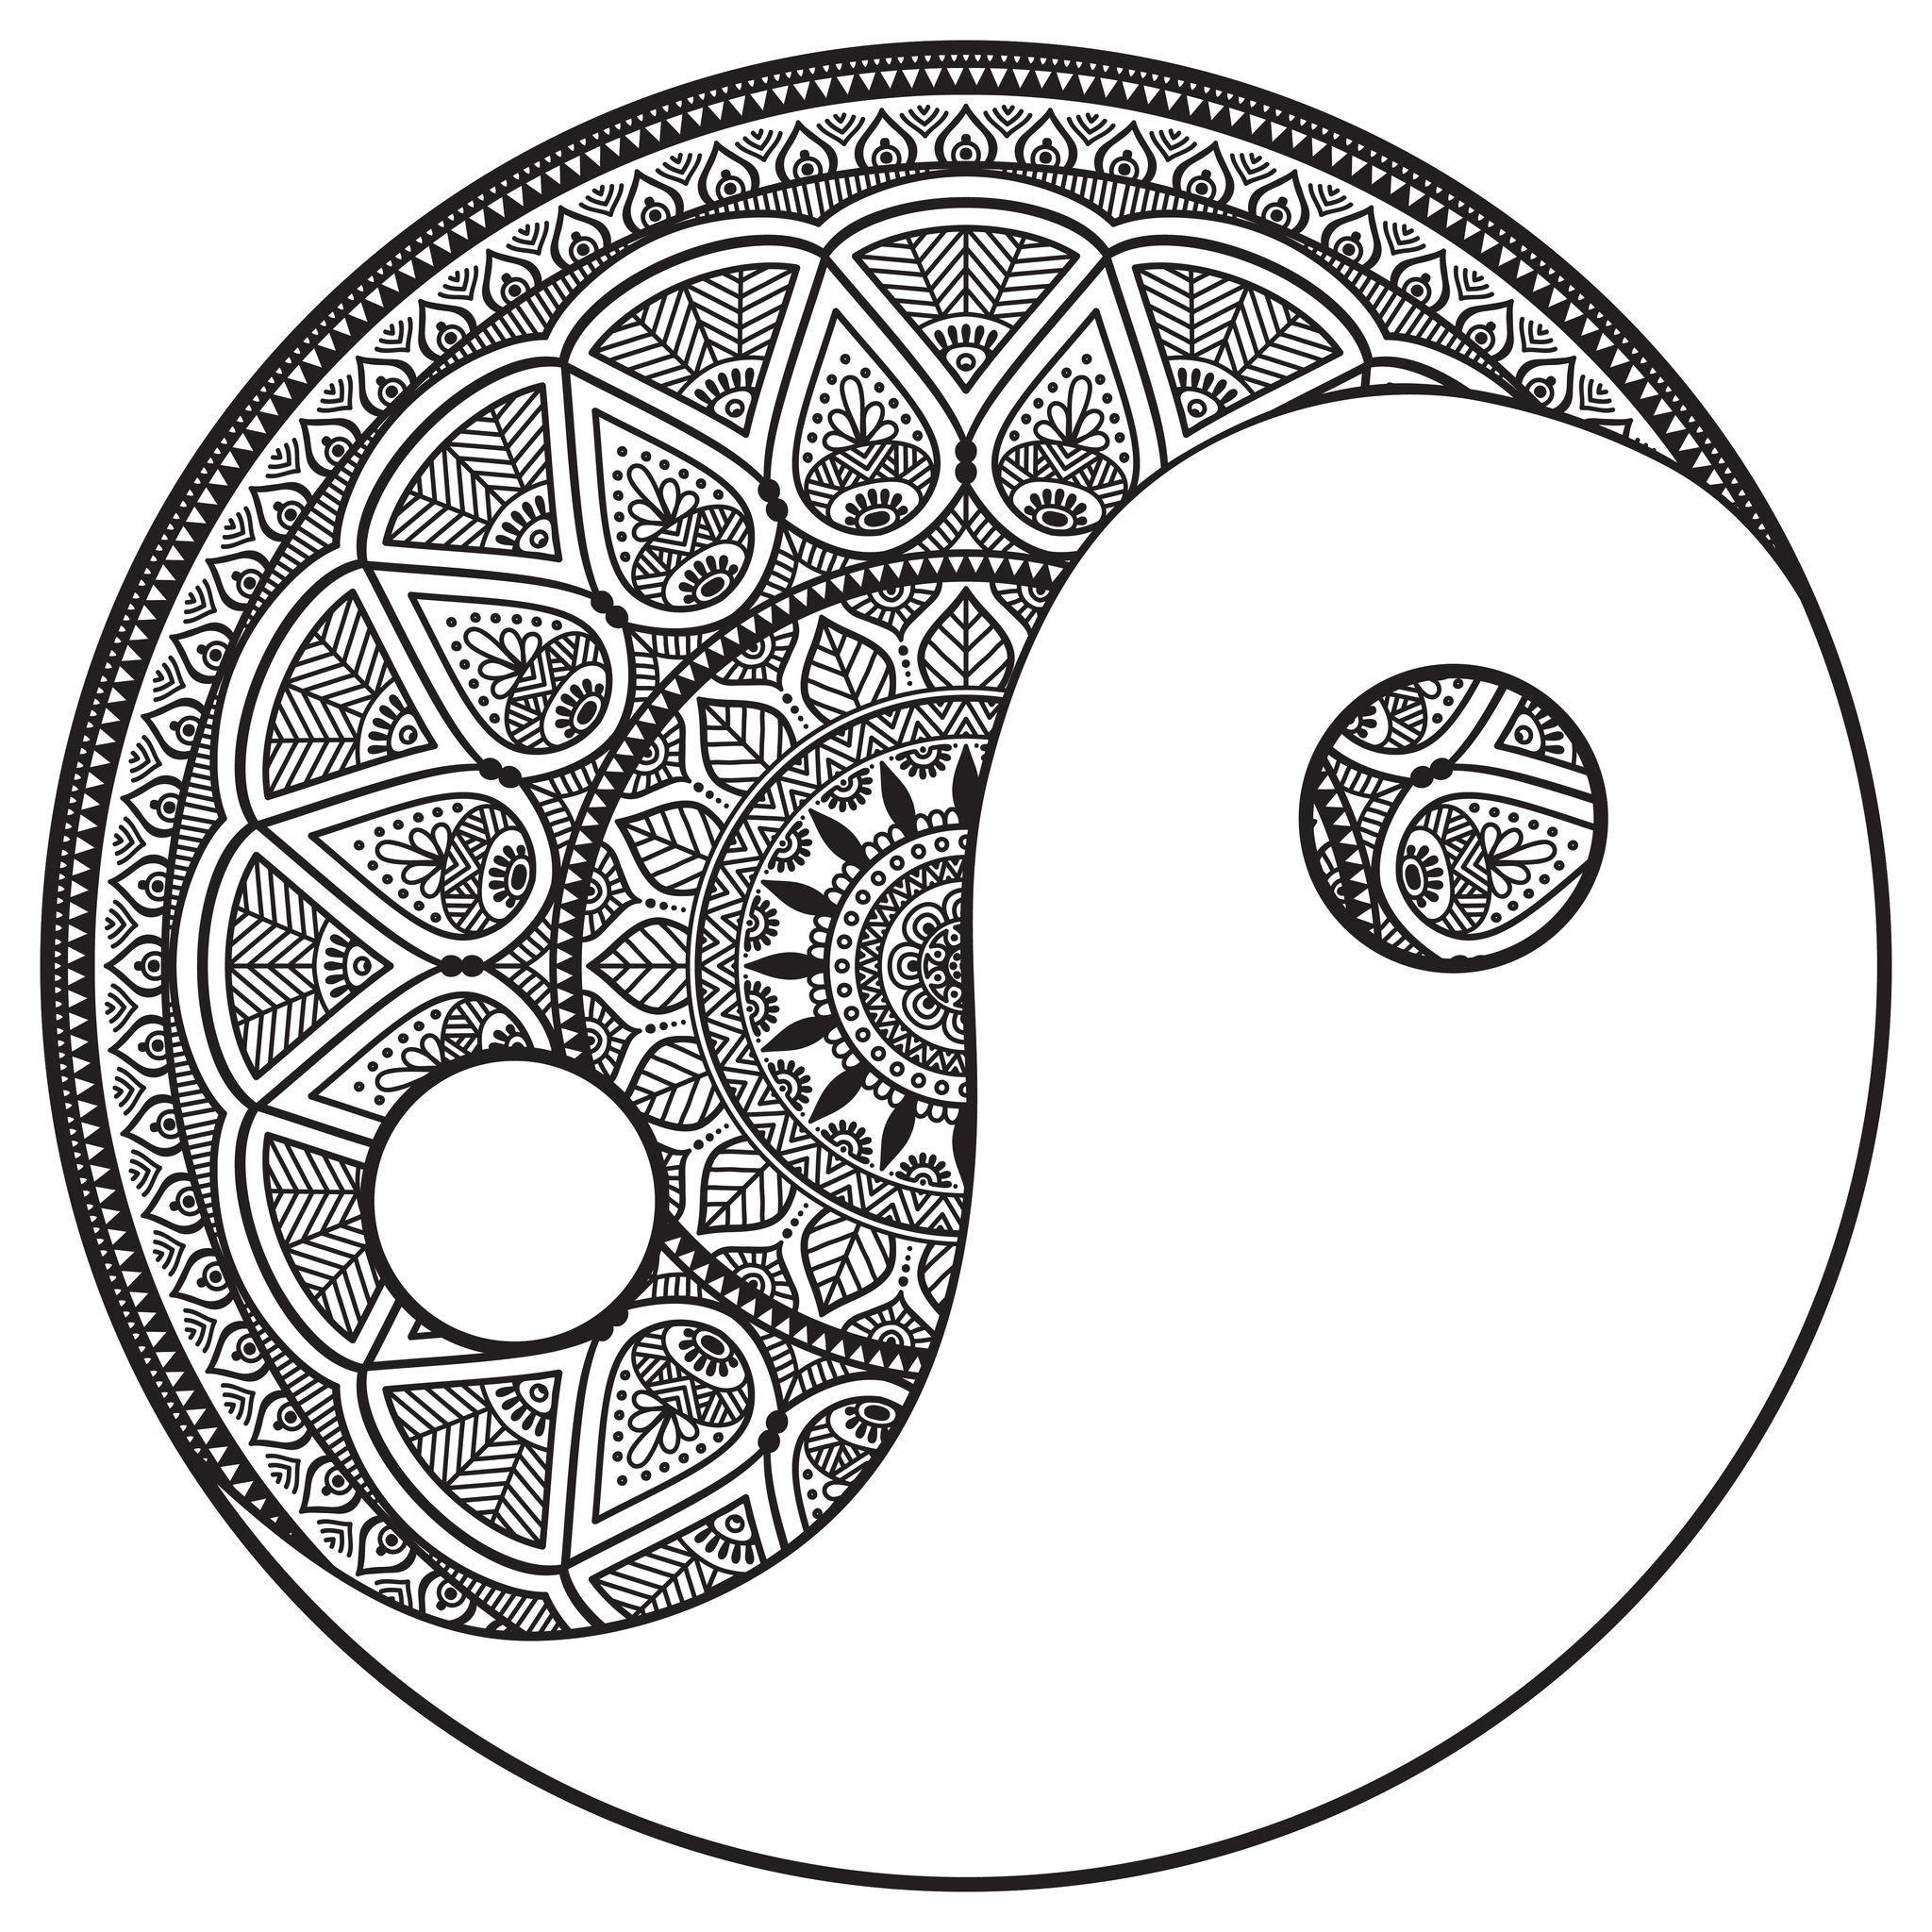 yin and yang mandala from the gallery mandalas artist snezh source - Adult Coloring Pages Mandala